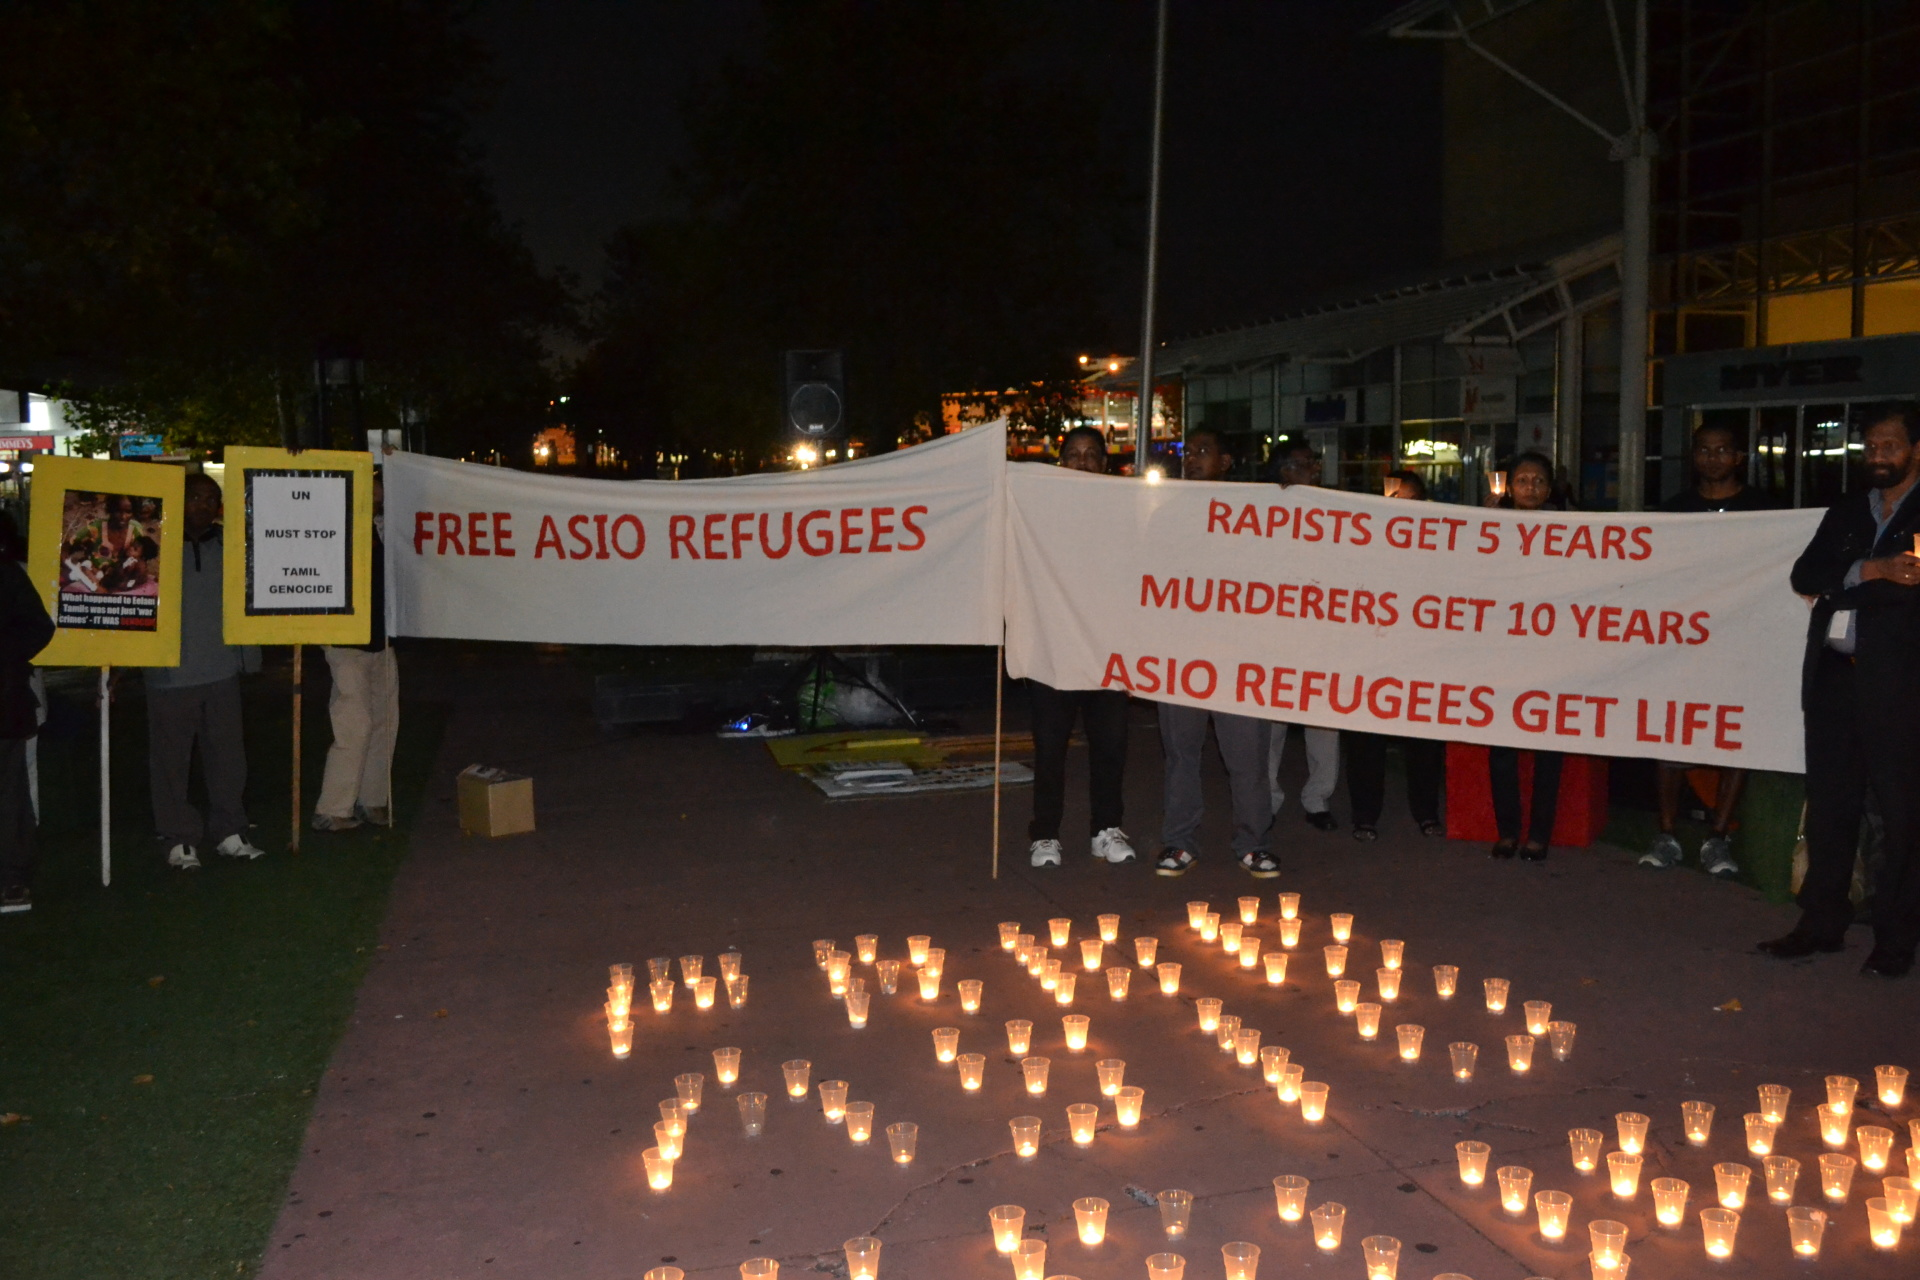 Protest in support of refugees